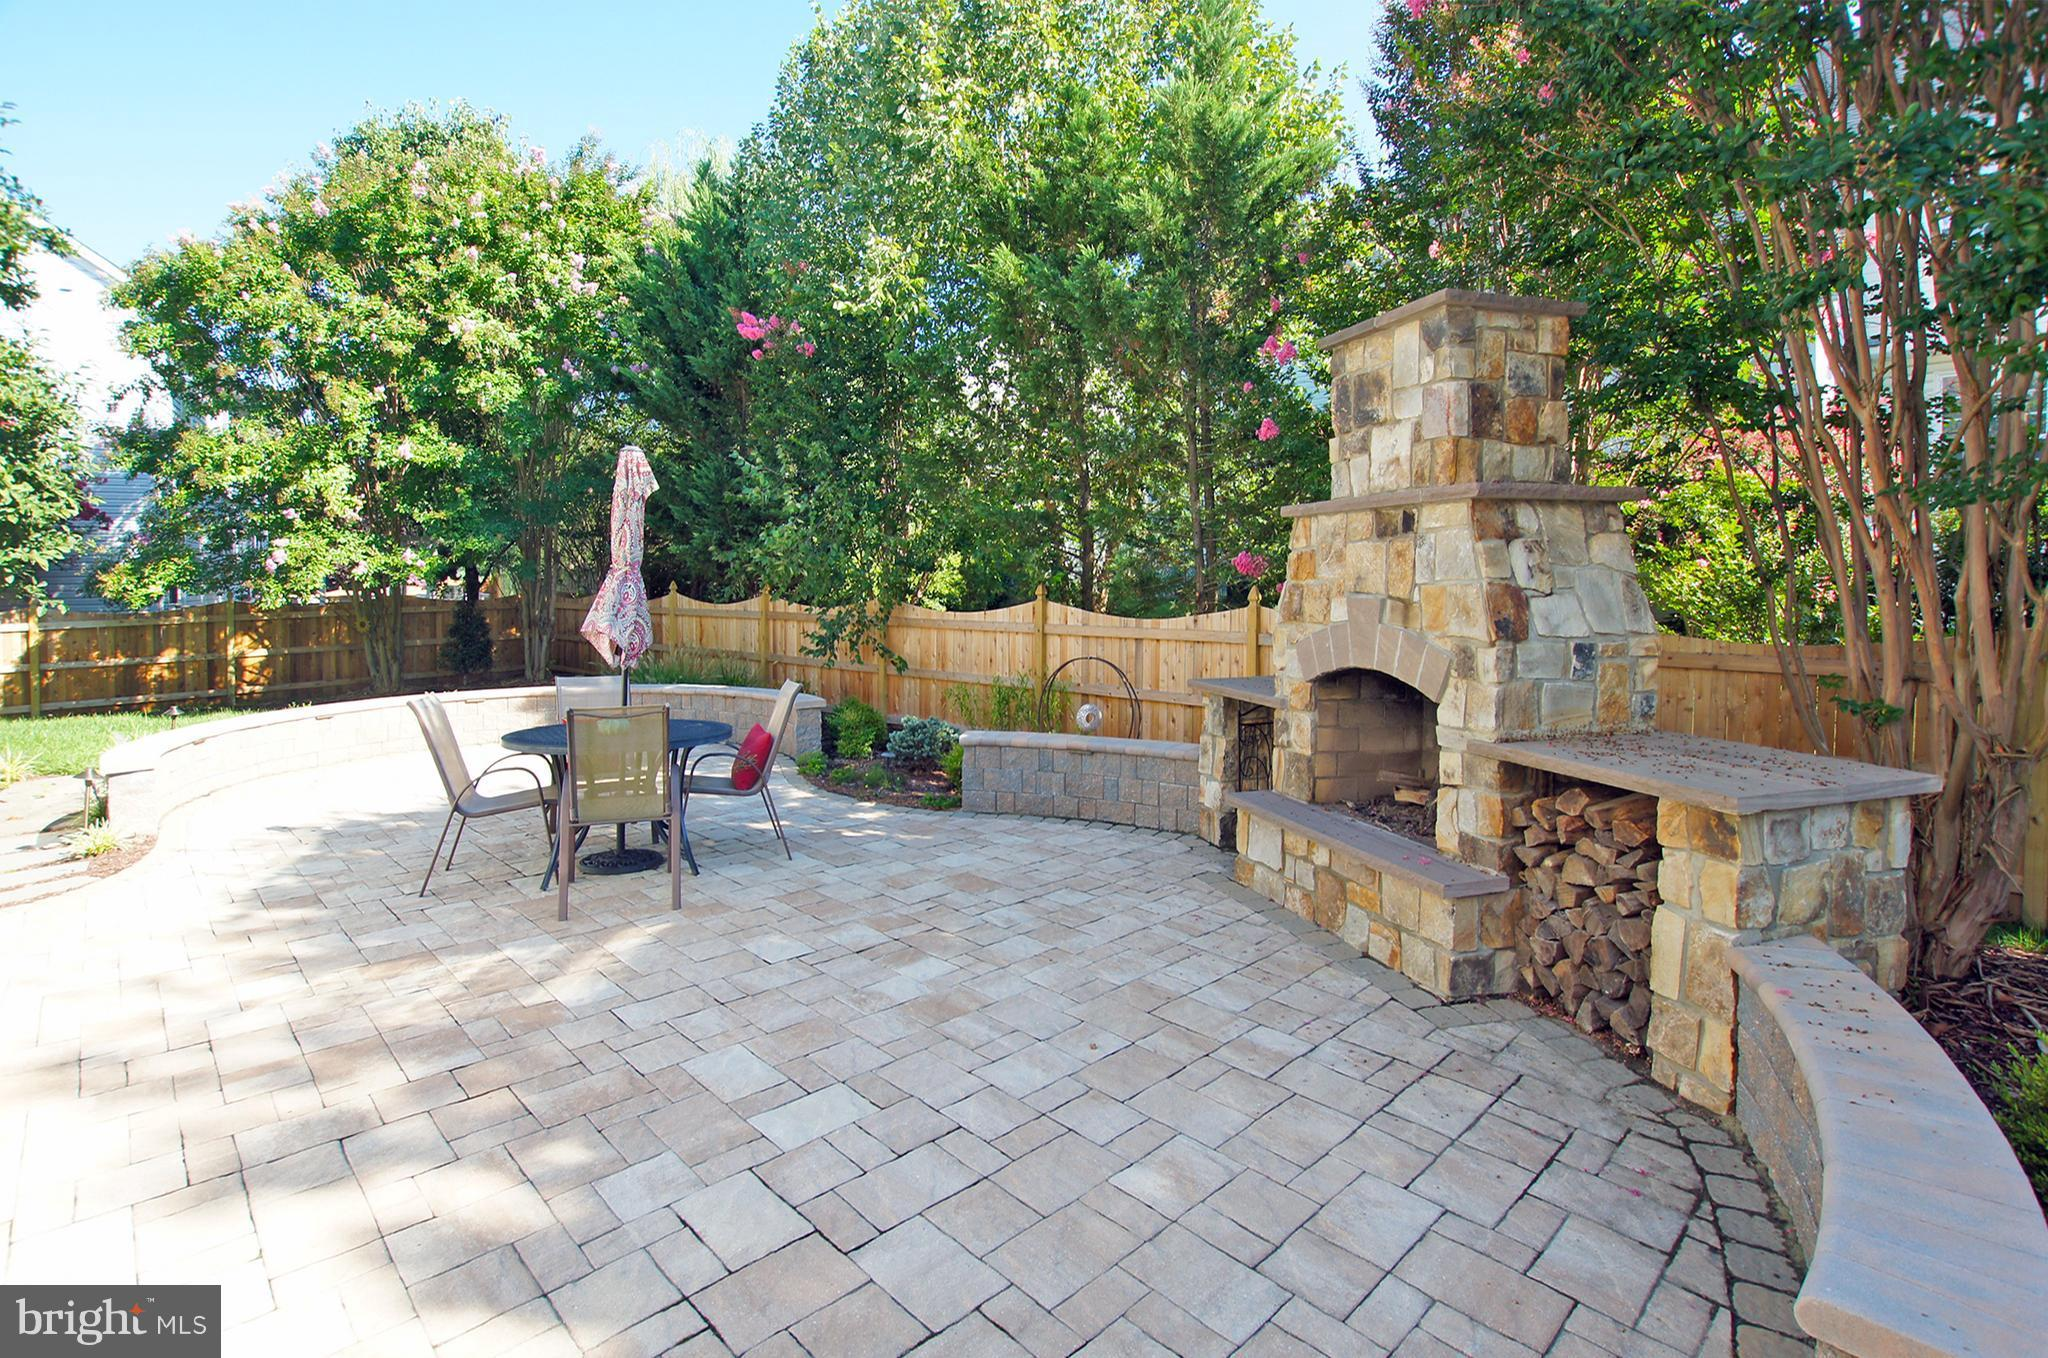 Pleasant 43230 Kimberly Anne Court Ashburn Va 20147 Sold Listing Mls 1003081016 Re Max Of Reading Home Interior And Landscaping Fragforummapetitesourisinfo